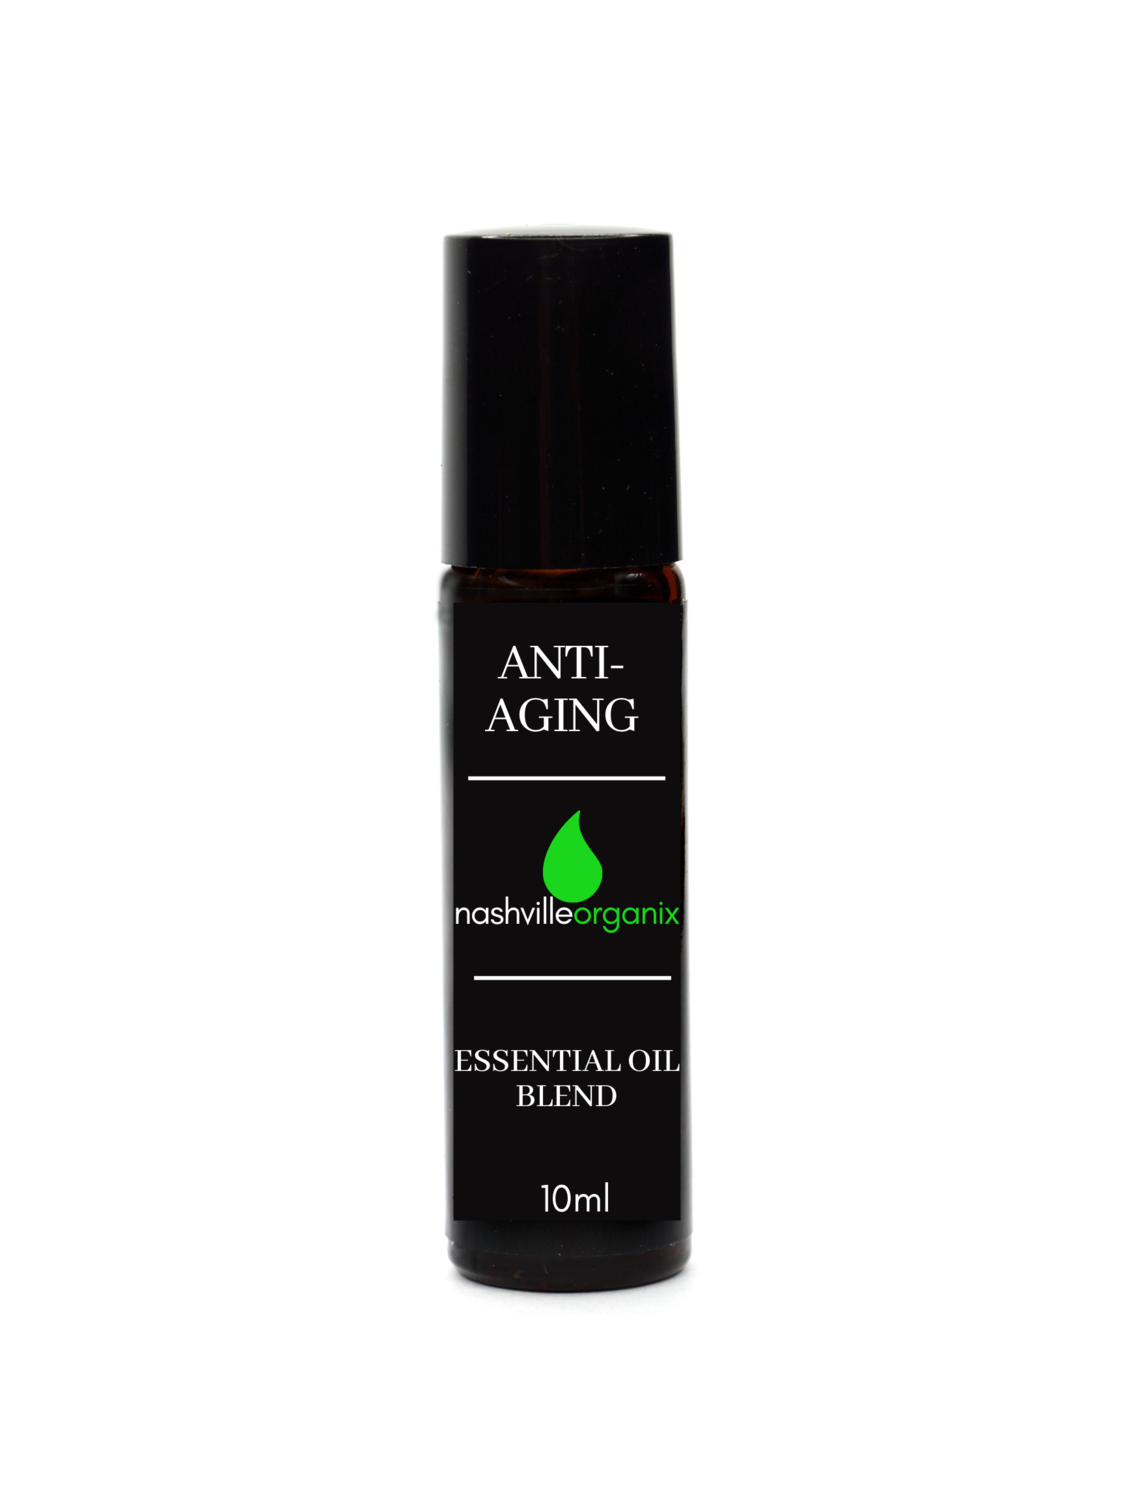 Anti-Aging Blend with Hemp Oil